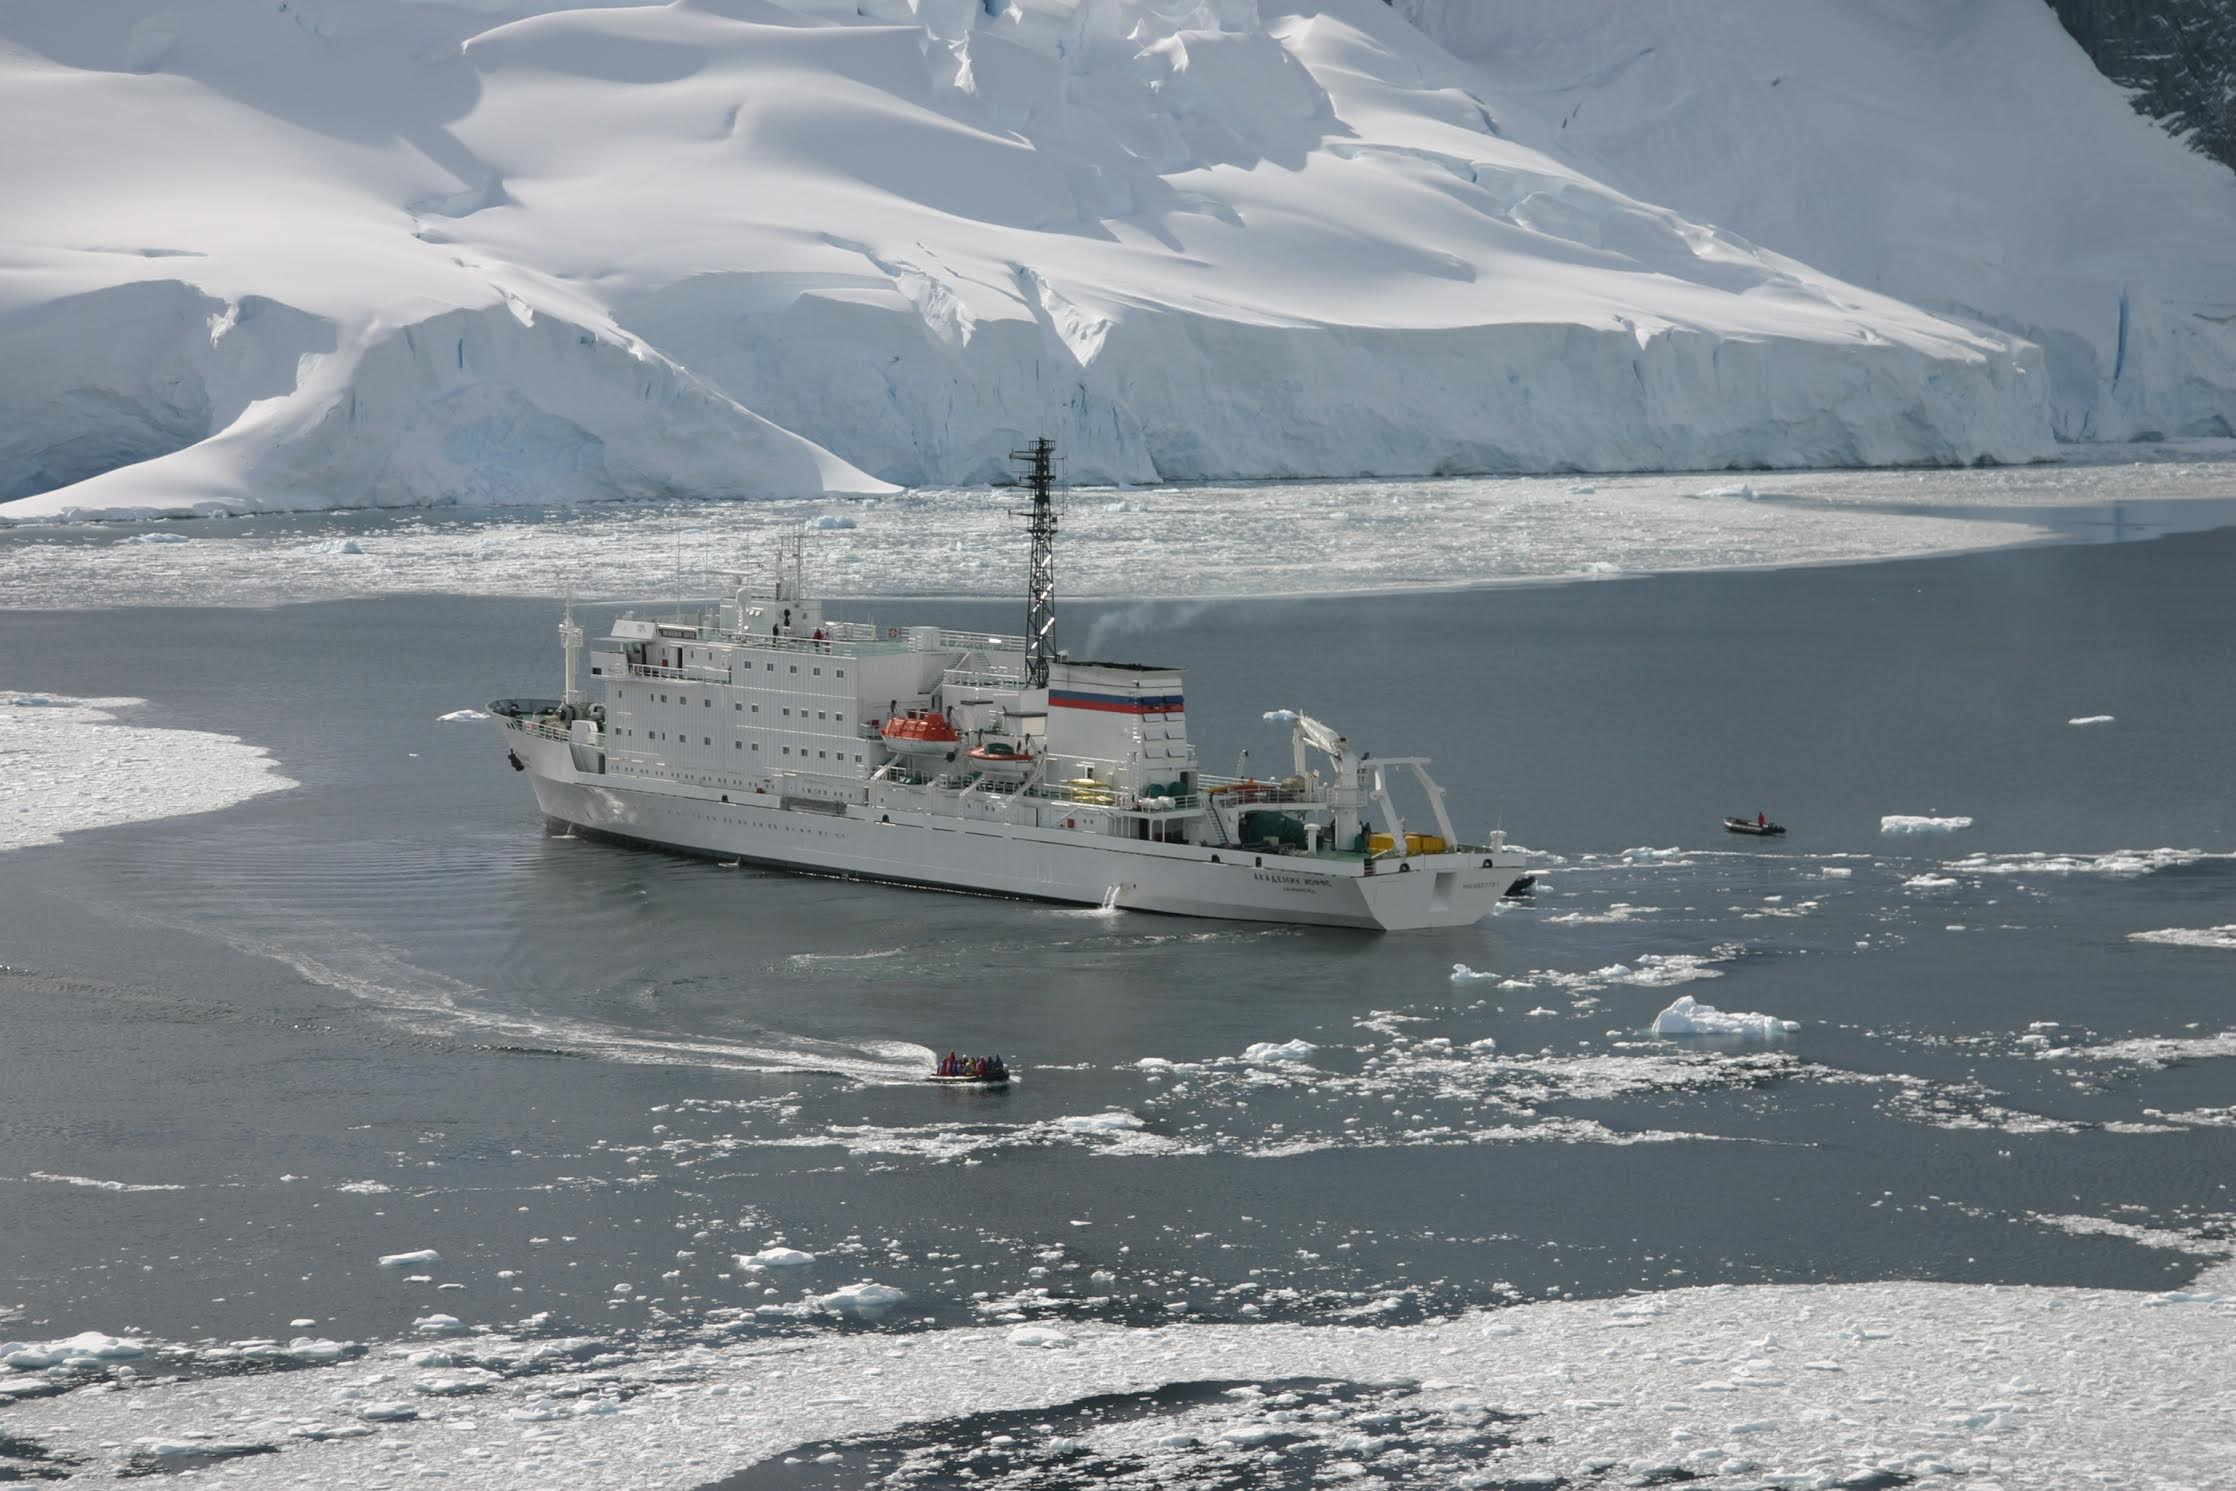 Akademik Ioffe at Antarctica - The Backpacker Intern